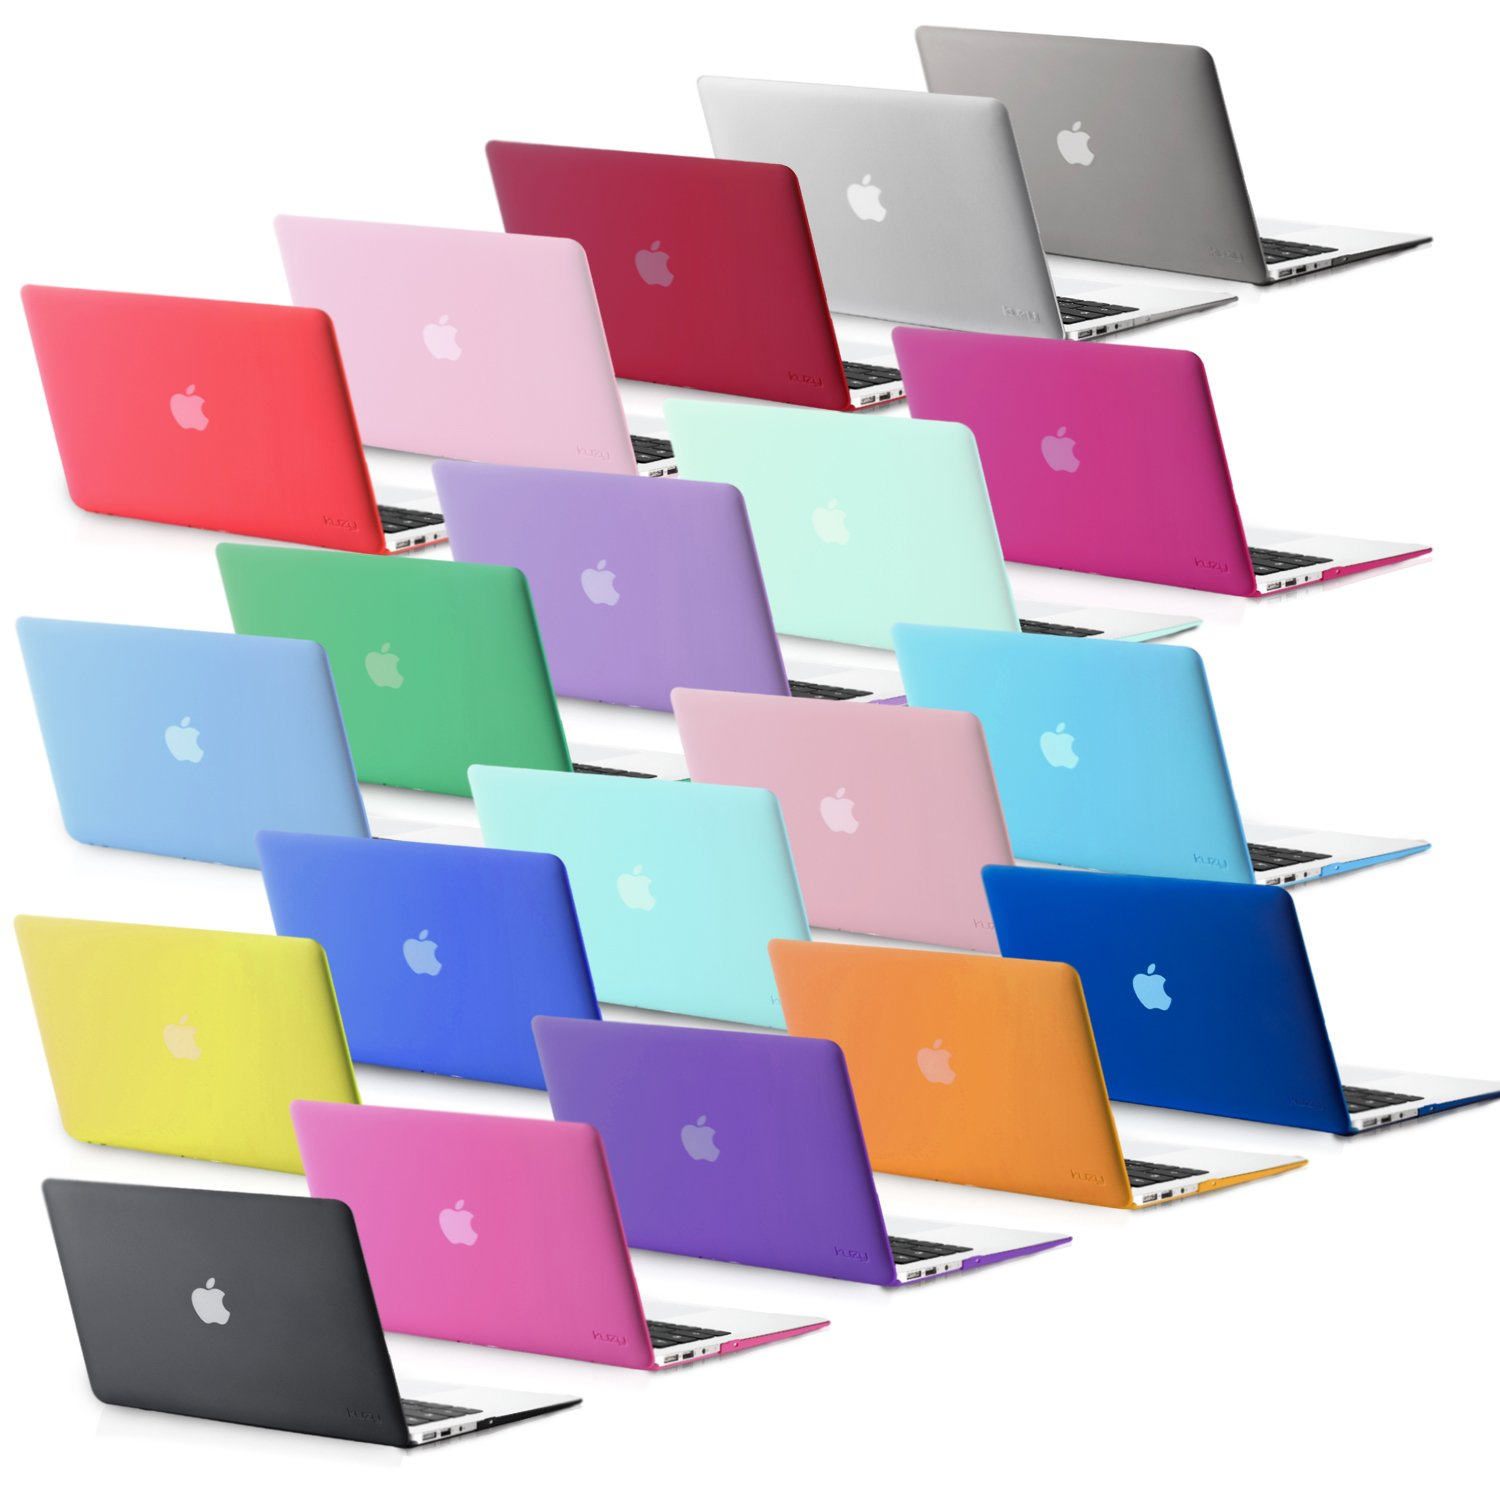 Kuzy Compatible with MacBook Air 13 inch Case 2017 2016 2015 Older Version A1466 A1369 Soft Touch Hard Shell Cover for…